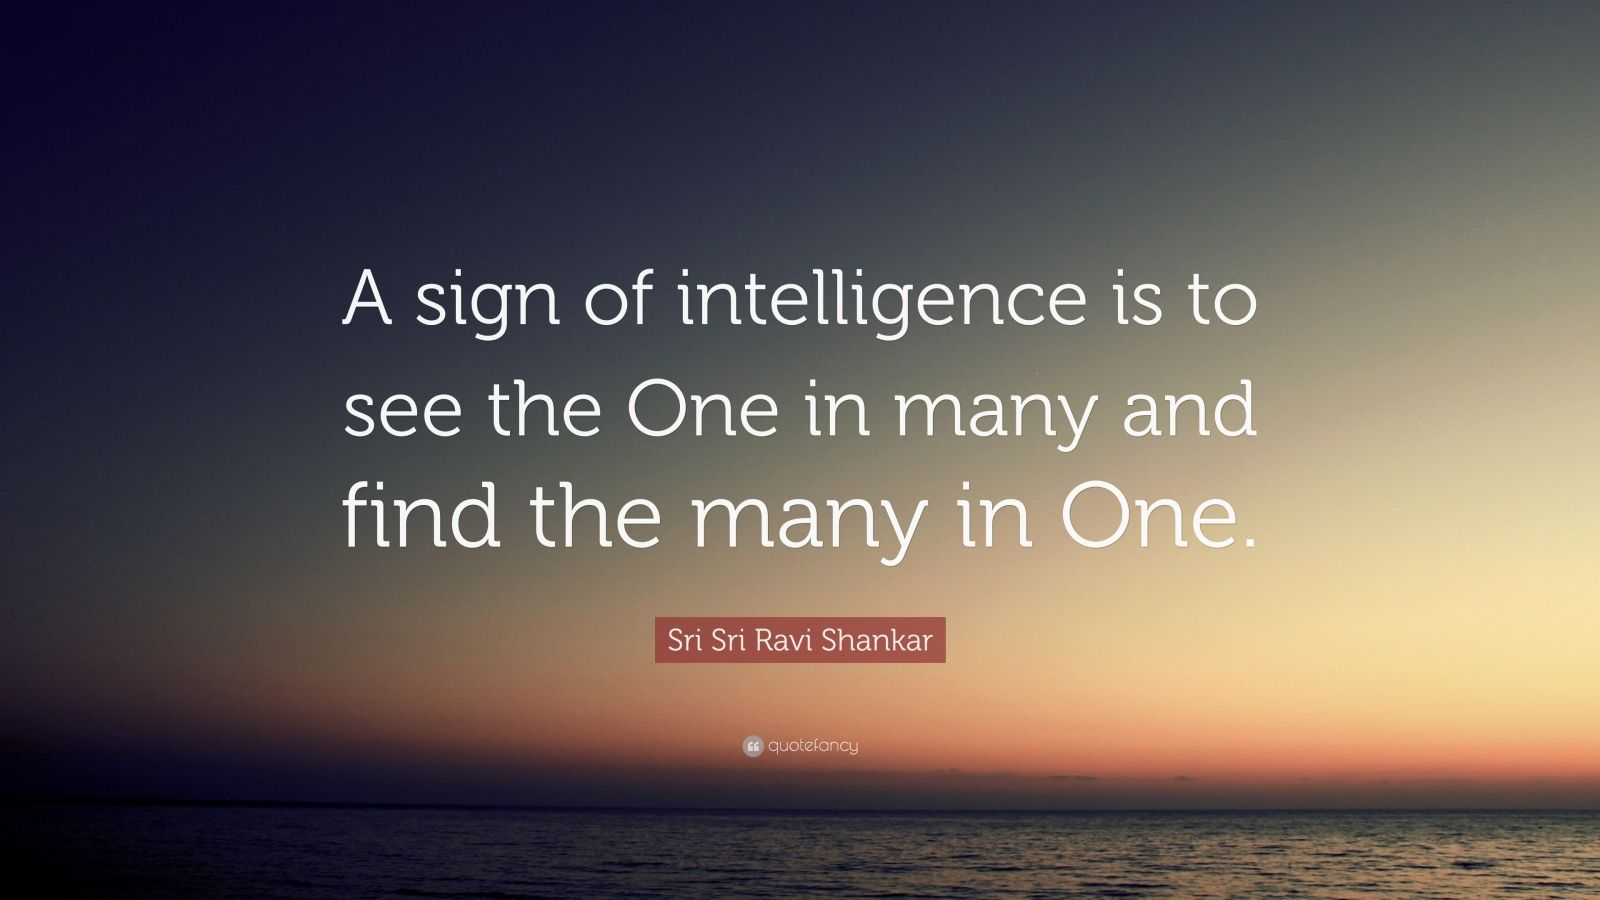 """Sri Sri Ravi Shankar Quote: """"A sign of intelligence is to see the One in many and find the many in One."""""""